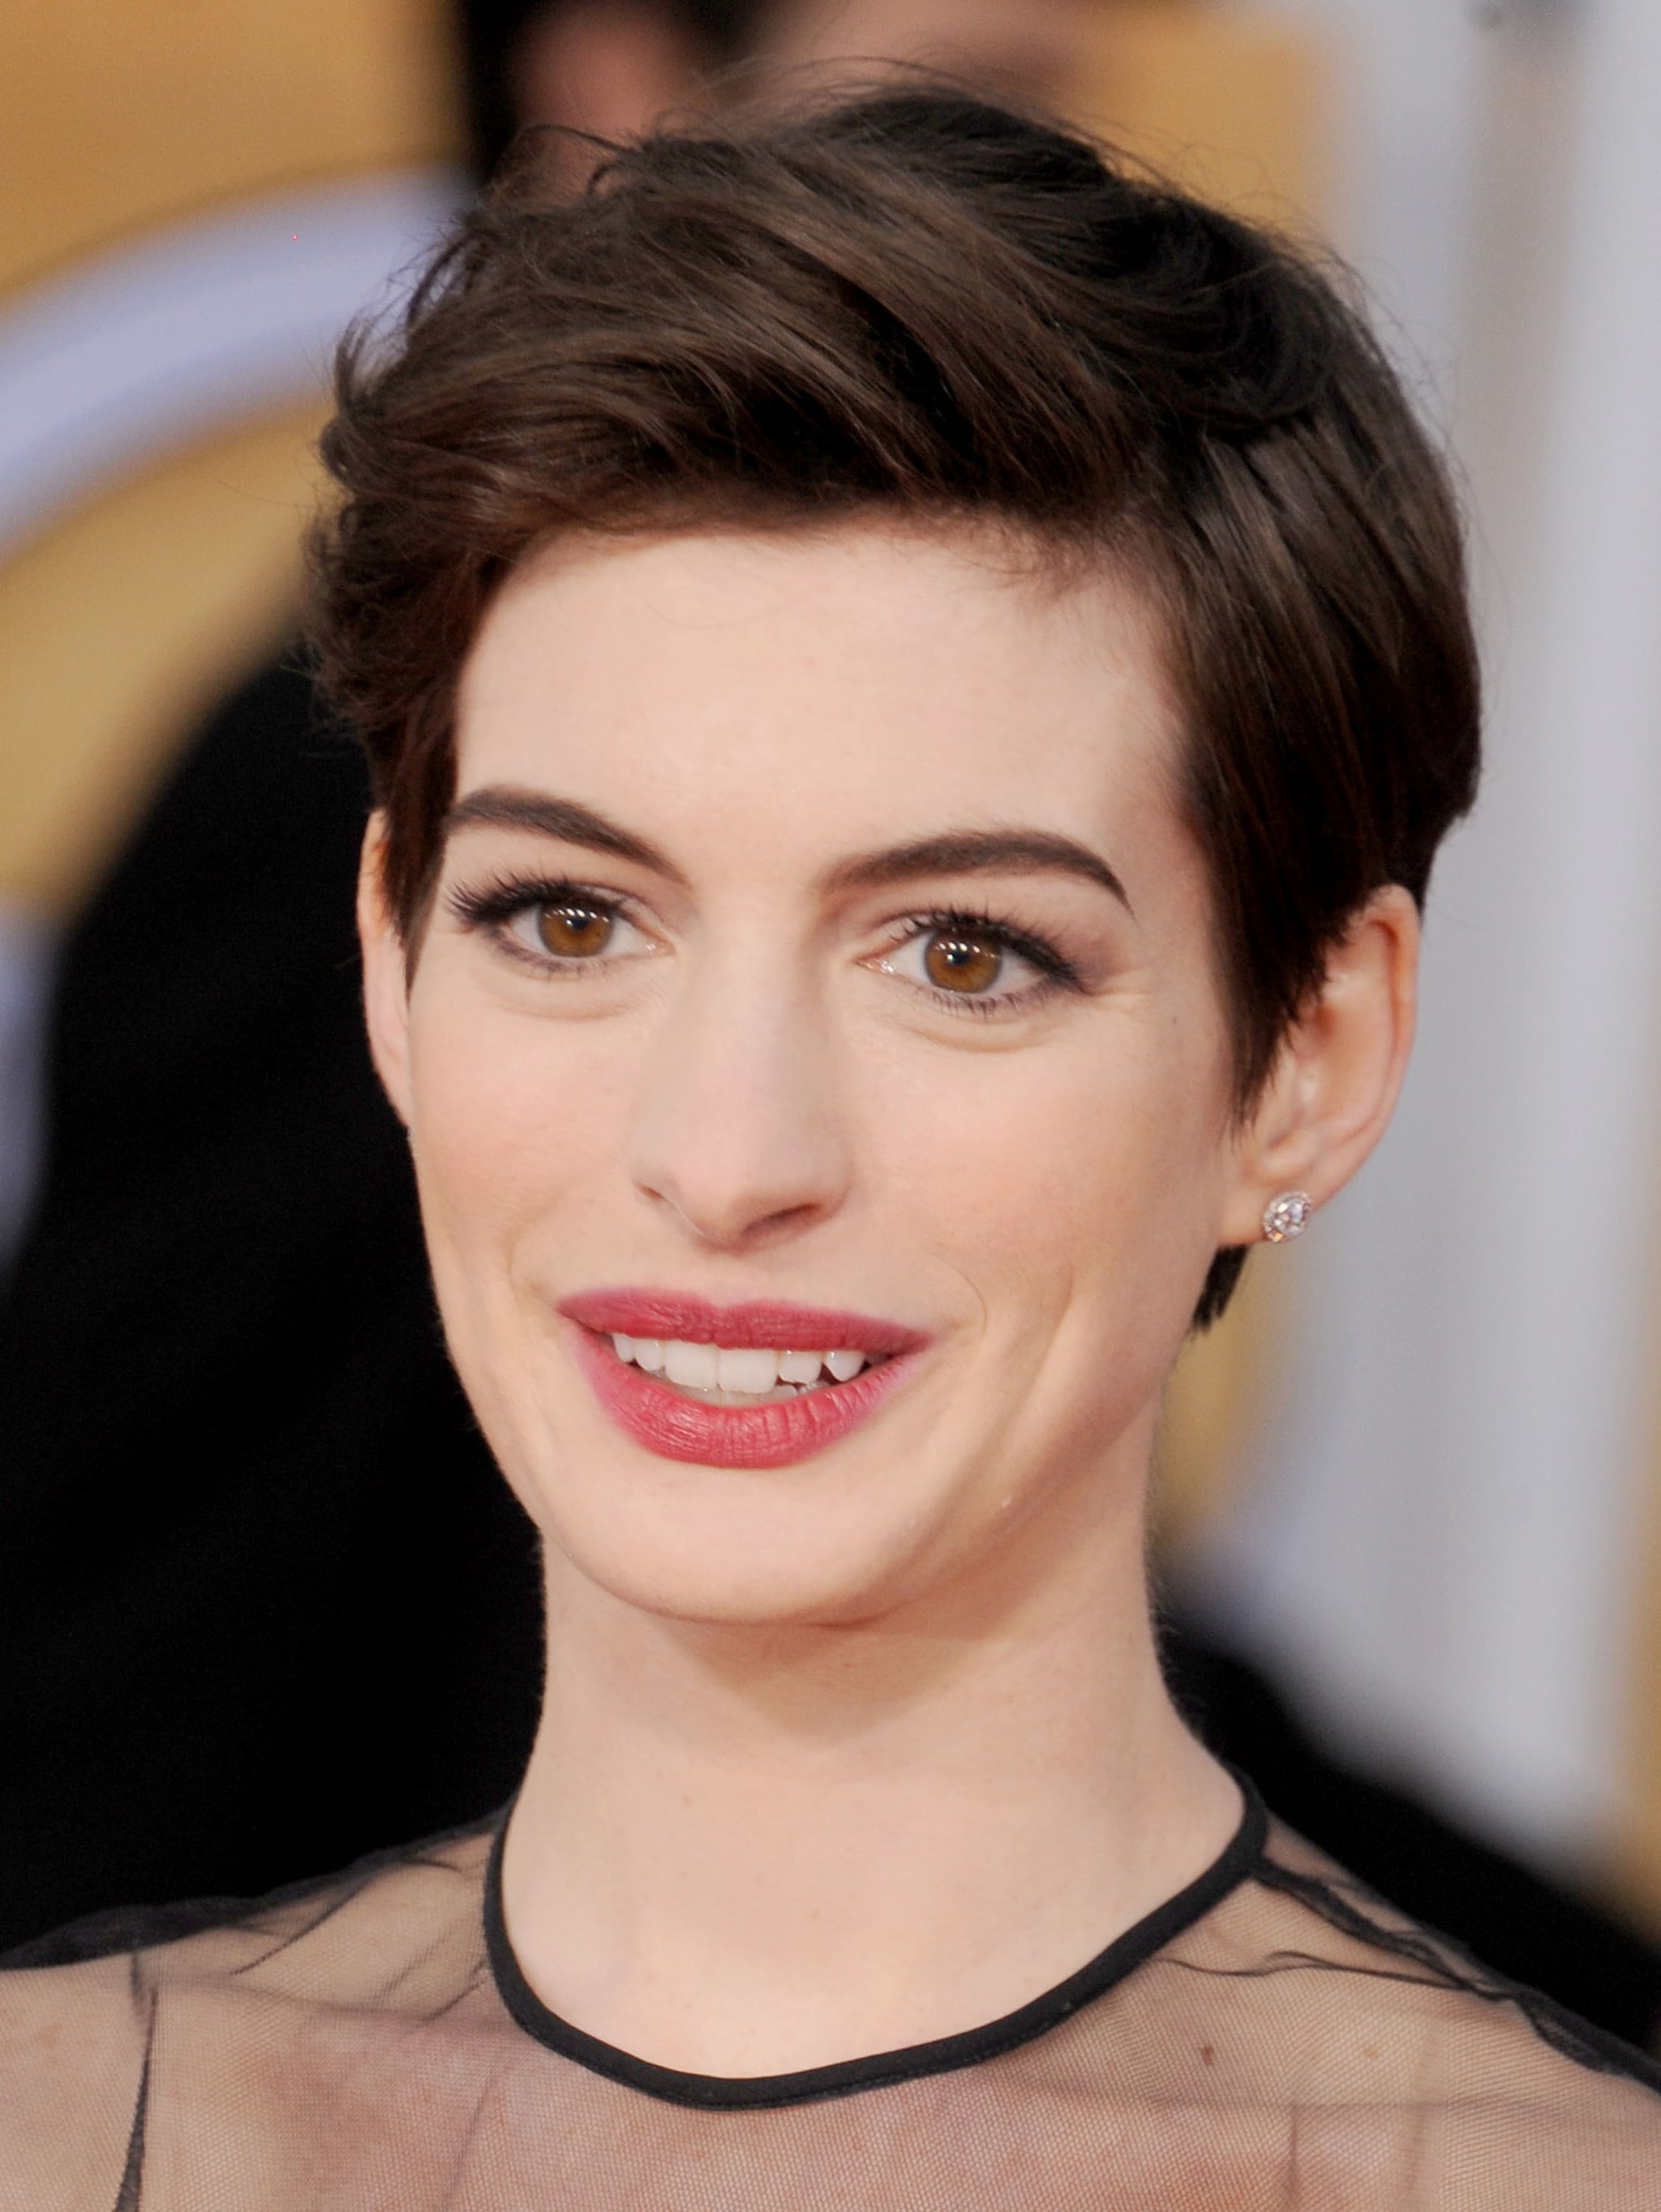 When you want to get short hair out of your face, try Anne's look from the SAG Awards. Use a bit of pomade and a blow dryer to smooth bangs up and back.